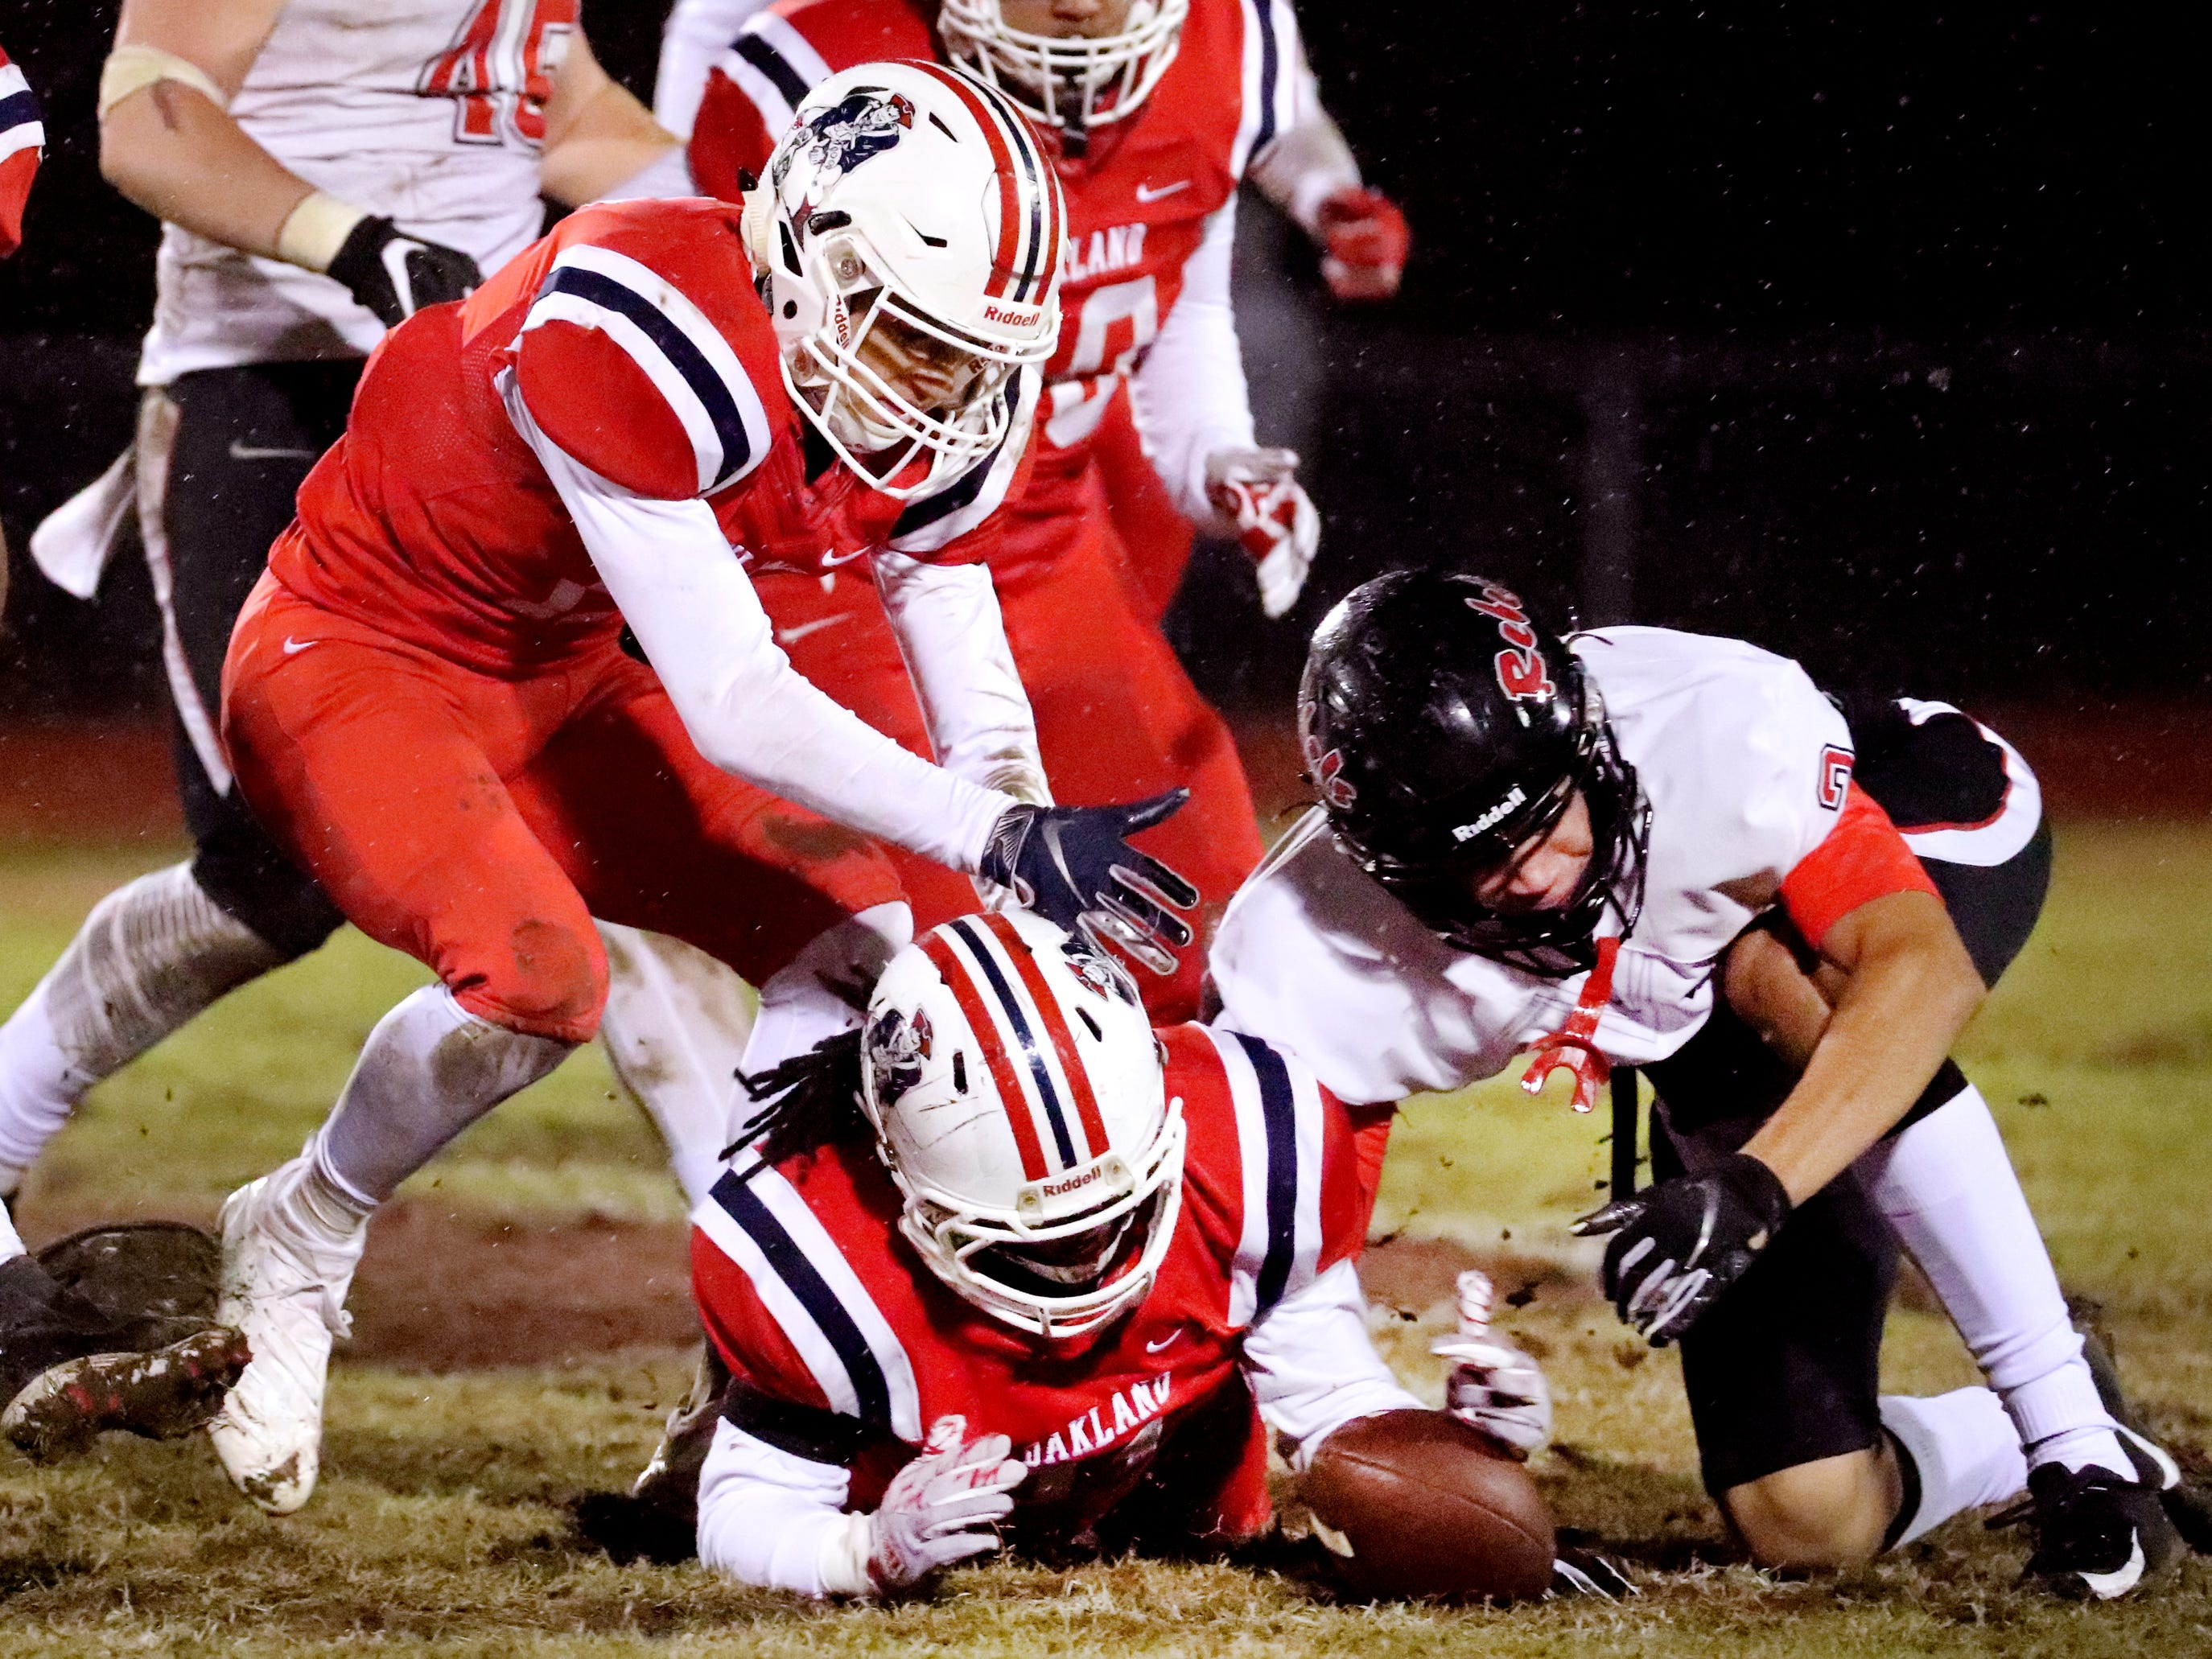 Oakland's Malik Sibert (11) recovers a fumble made by Maryville as Maryville's Ashton Maples (2) and Oakland's Eddie Willis (17) also try to recover the fumble at Oakland in Murfreesboro, on Friday, Aug. 23 2018, during the 6A playoffs.